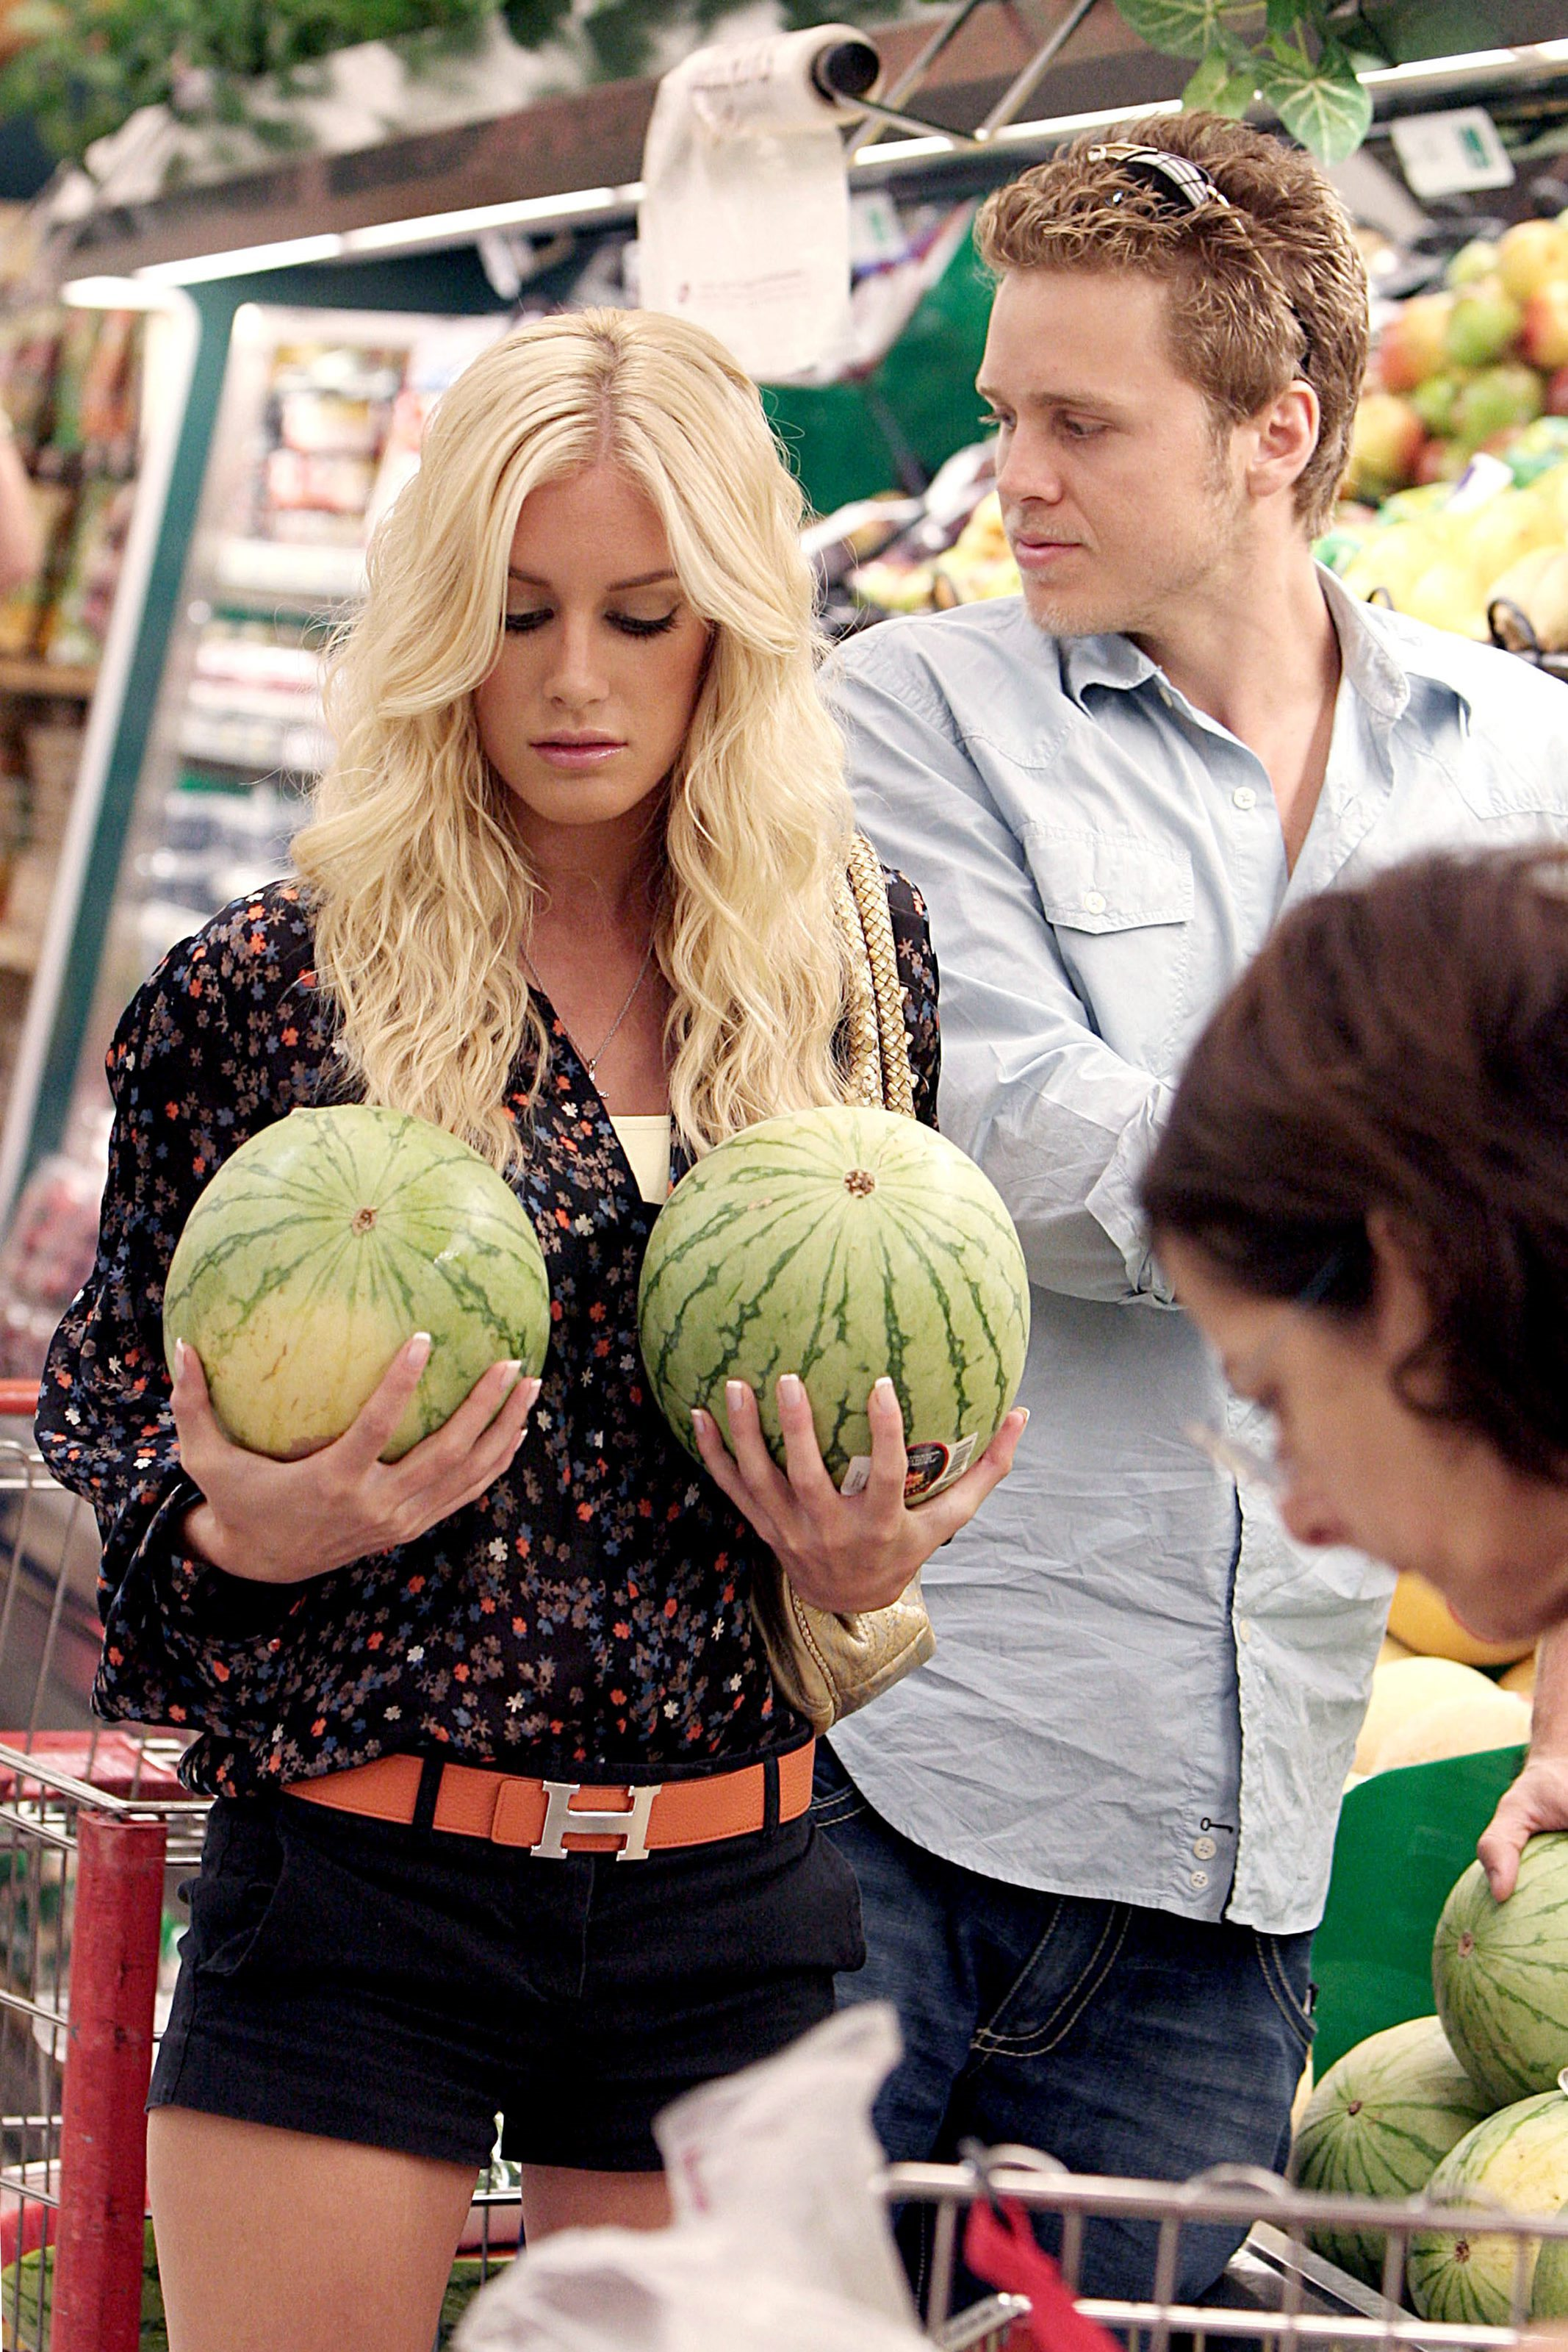 uh43048,1268689367,58055-heidi-montag-candid-shopping-for-groceries-0